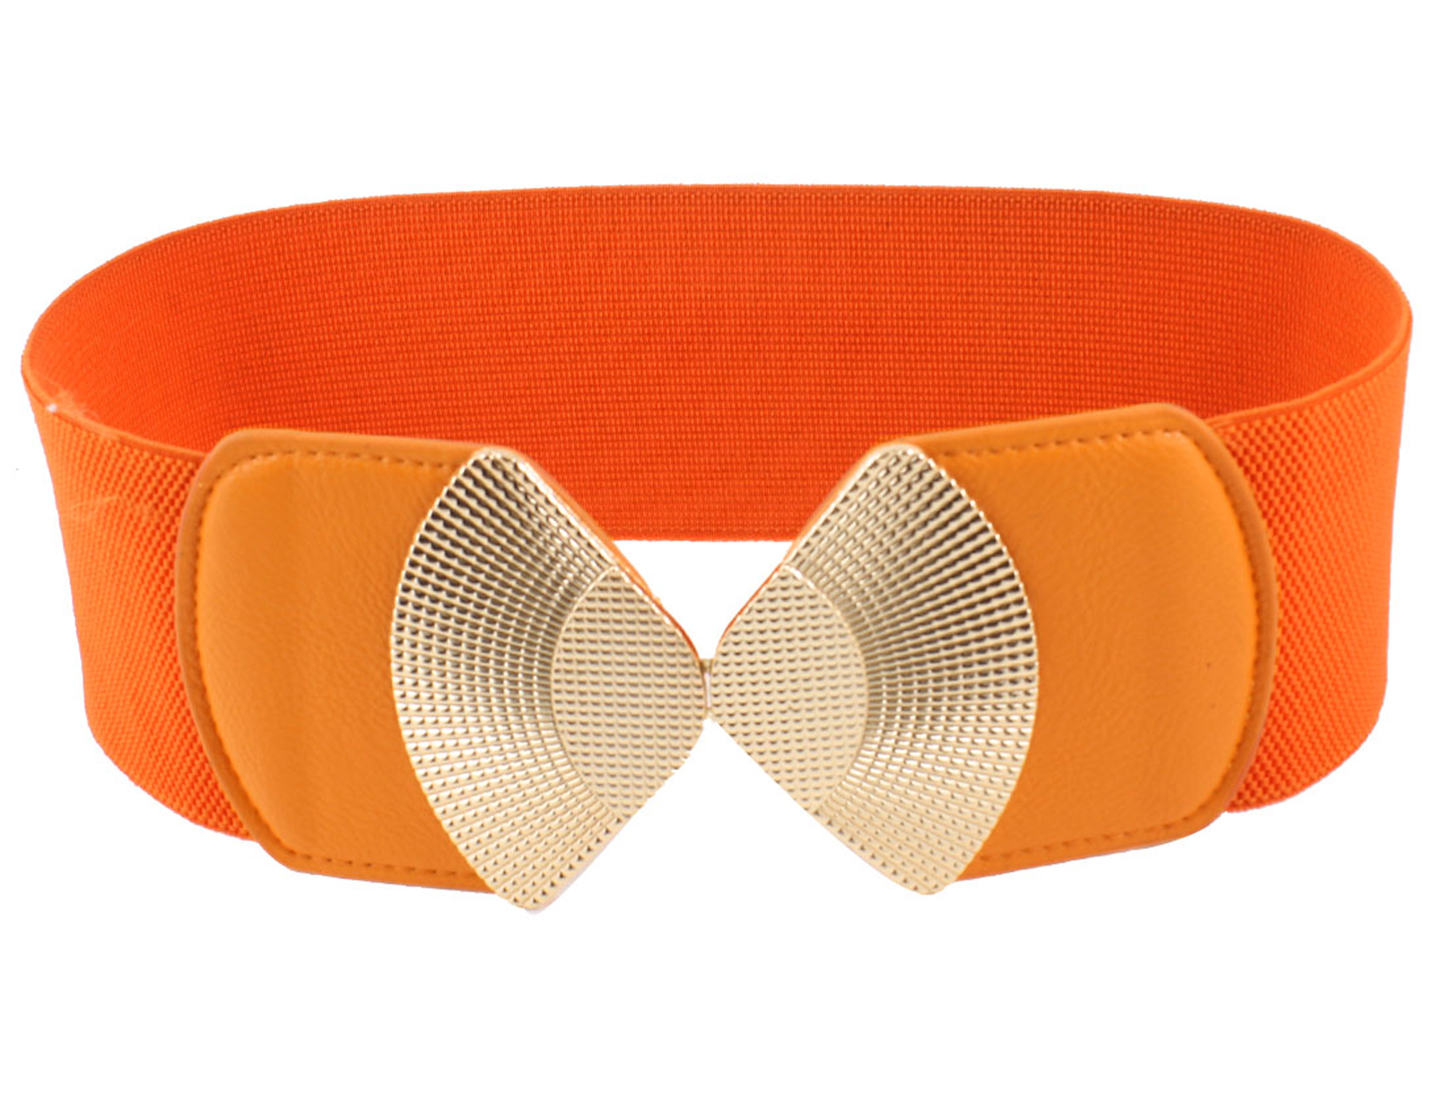 Lady Interlocking Buckle Elastic Orange Elastic Cinch Belt Band